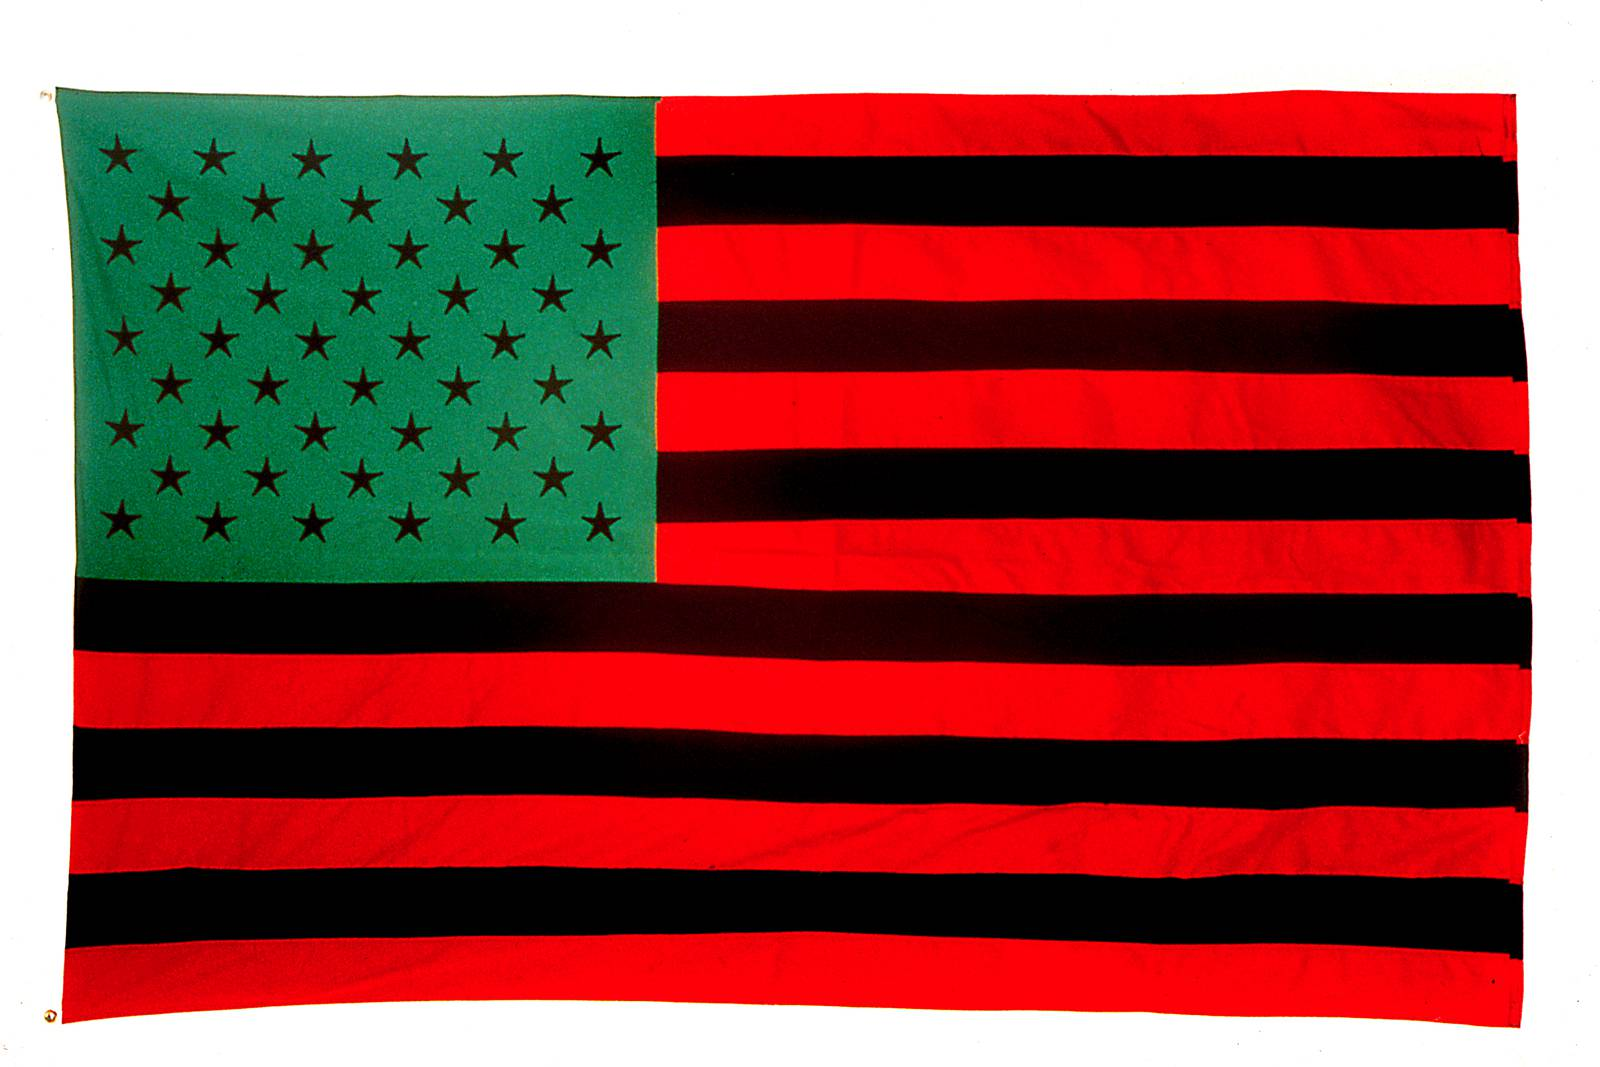 exploring african american art s long fight against racism amuse african american flag david hammons 1990 142 2 × 223 5 cm © david hammons